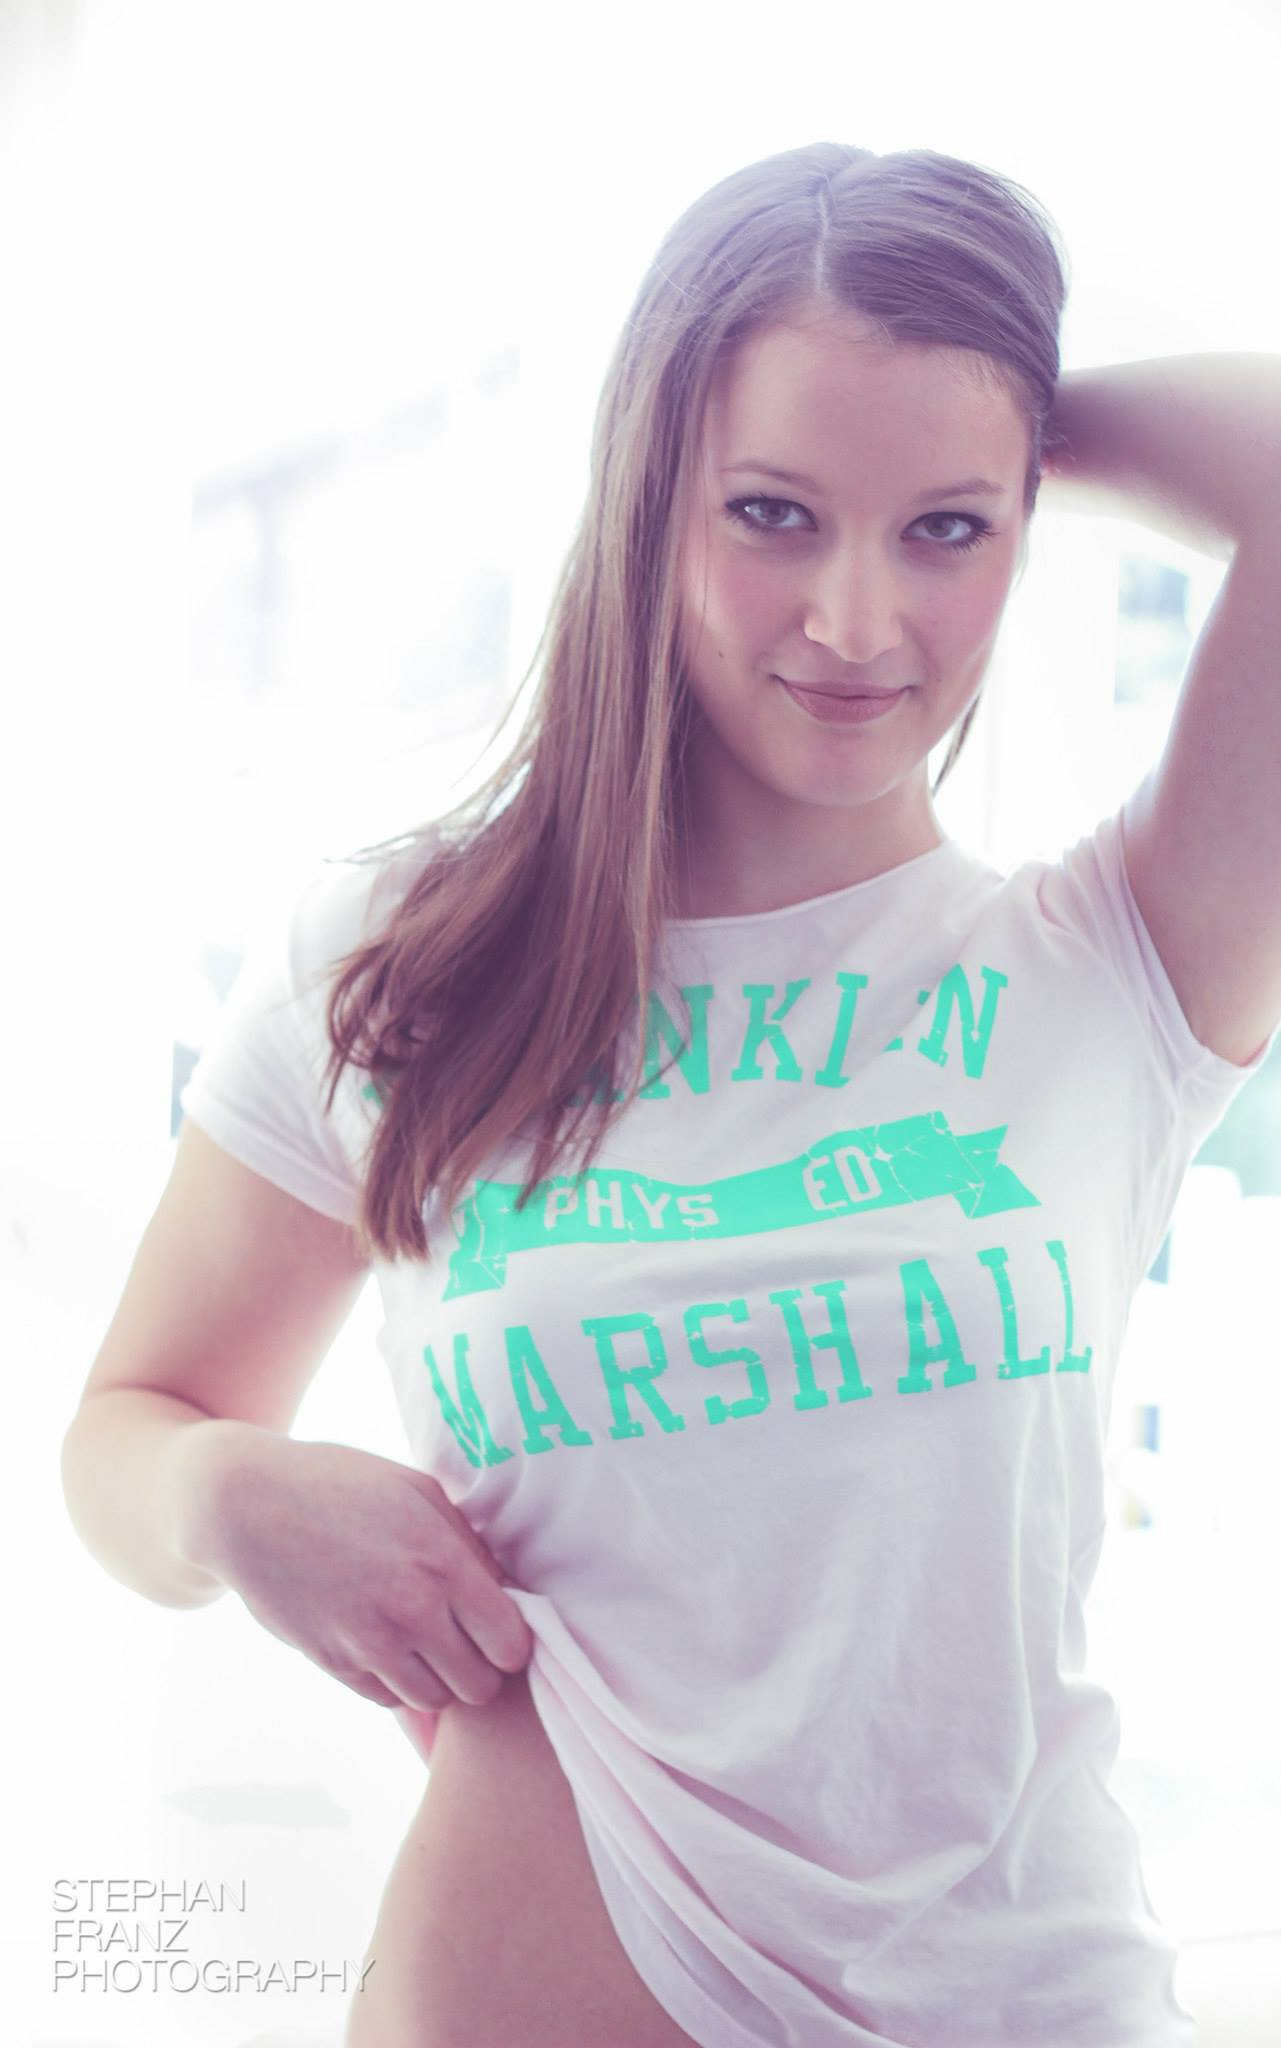 Franklin & Marshall Spring 2014 Fashion Shooting - Stephan Franz Photography